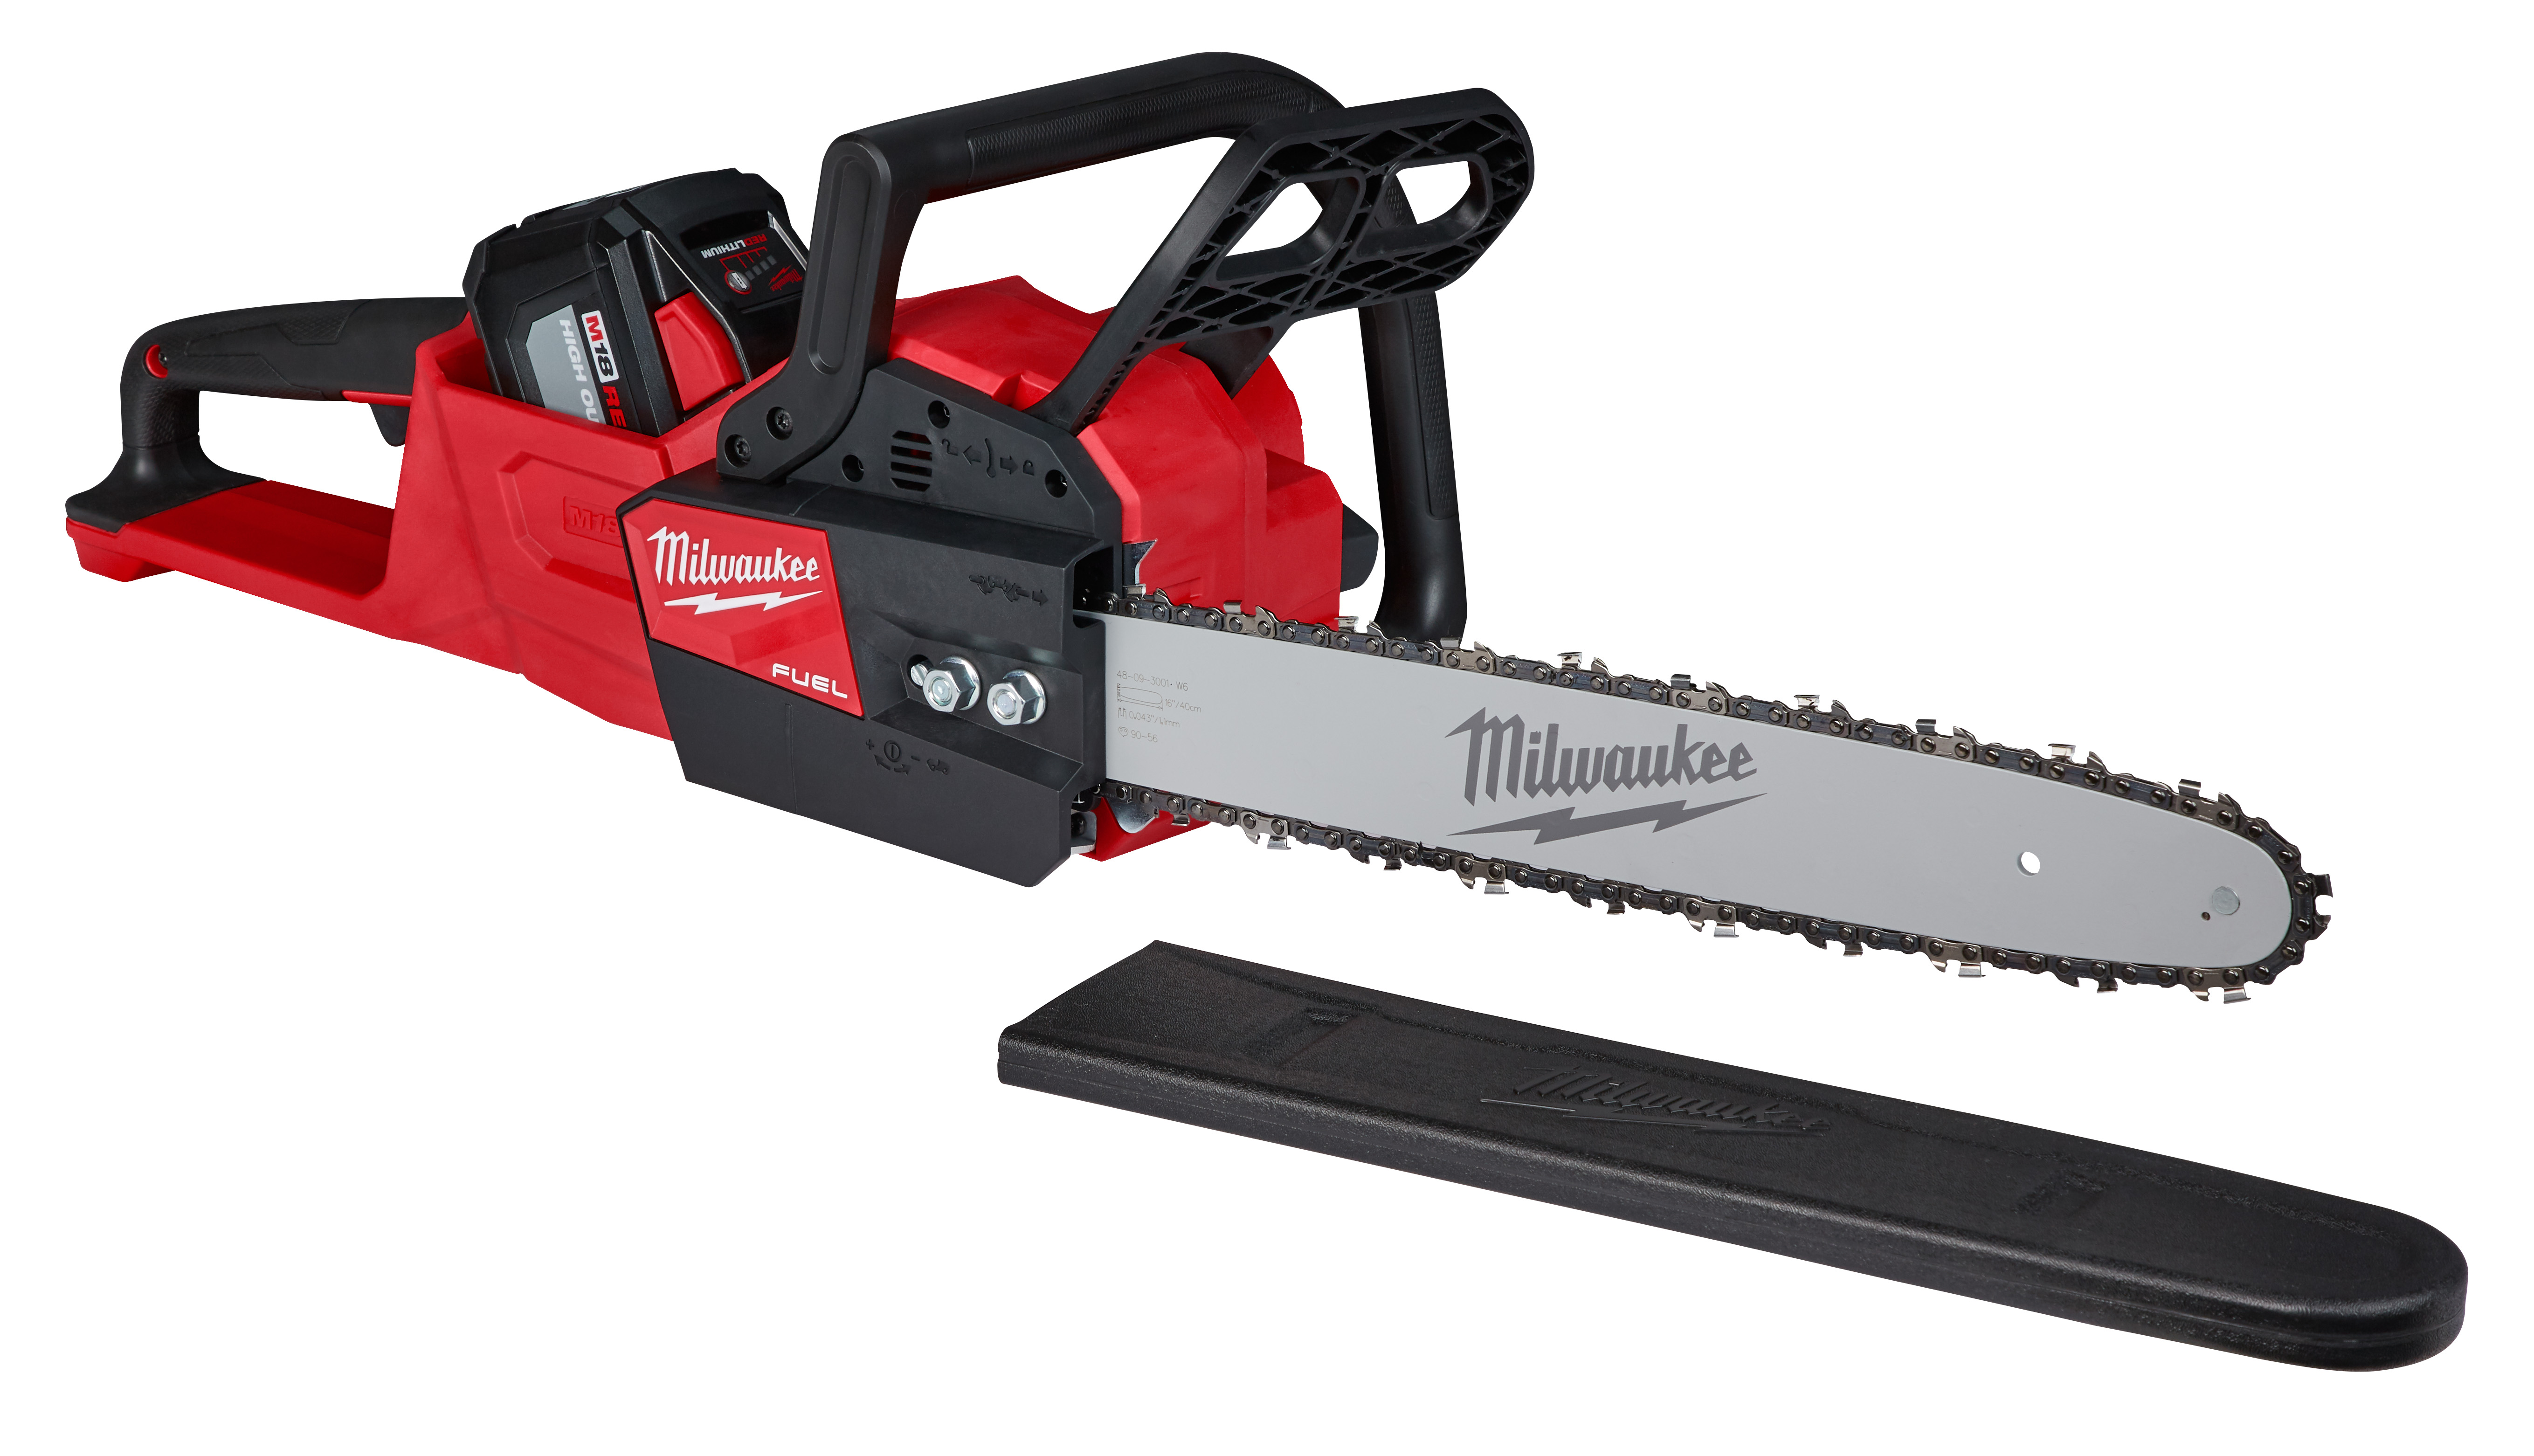 Milwaukee® 2527-21 M12™ FUEL™ HATCHET™ Cordless Rust-Resistant Pruning Saw Kit, 6 in Bar L Bar/Chain, 12 V, 4 Ah Lithium-Ion Battery